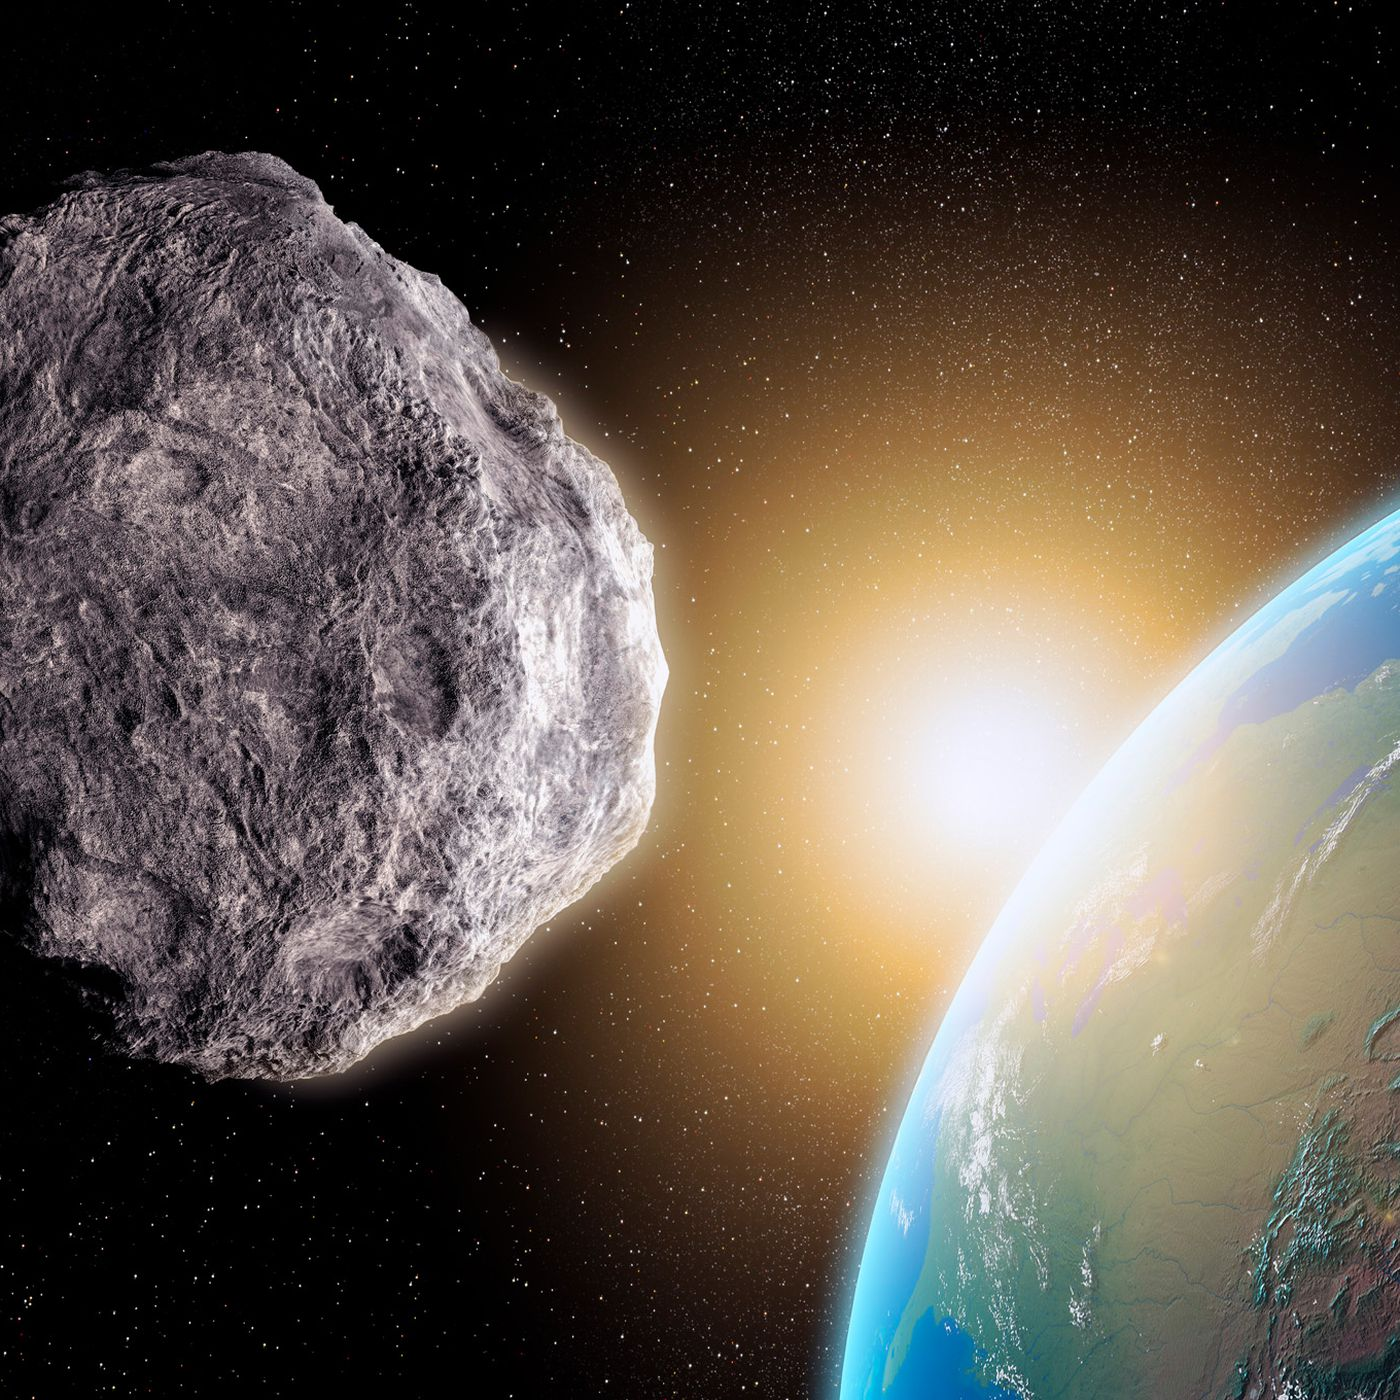 NASA is just simulating a potentially catastrophic asteroid